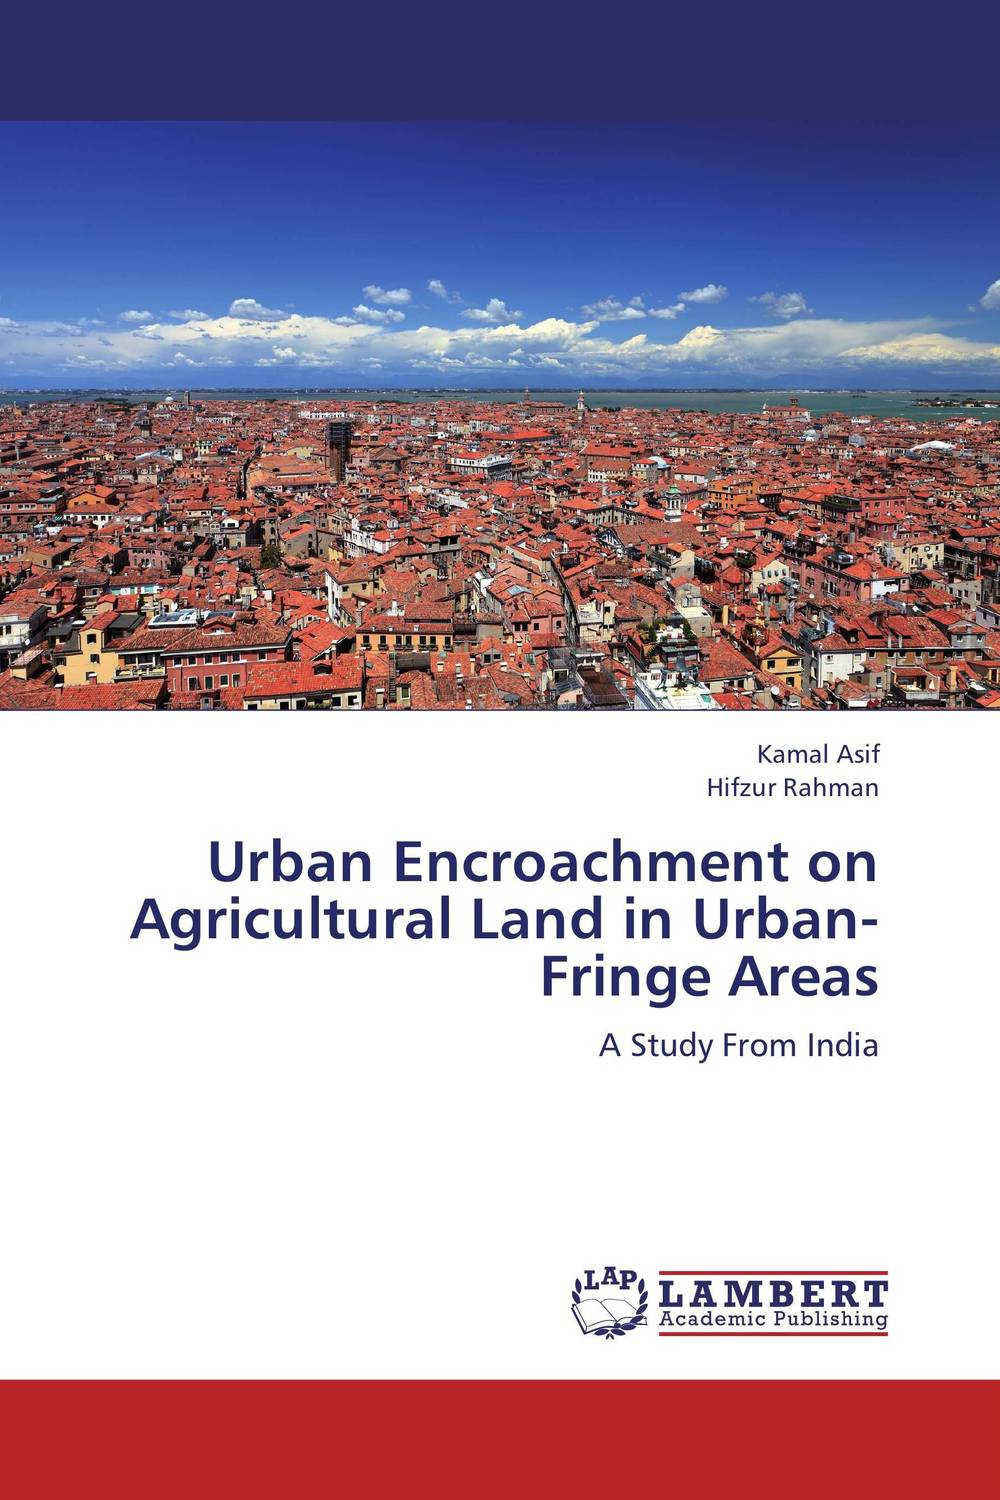 Urban Encroachment on Agricultural Land in Urban-Fringe Areas geomorphic control on urban expansion